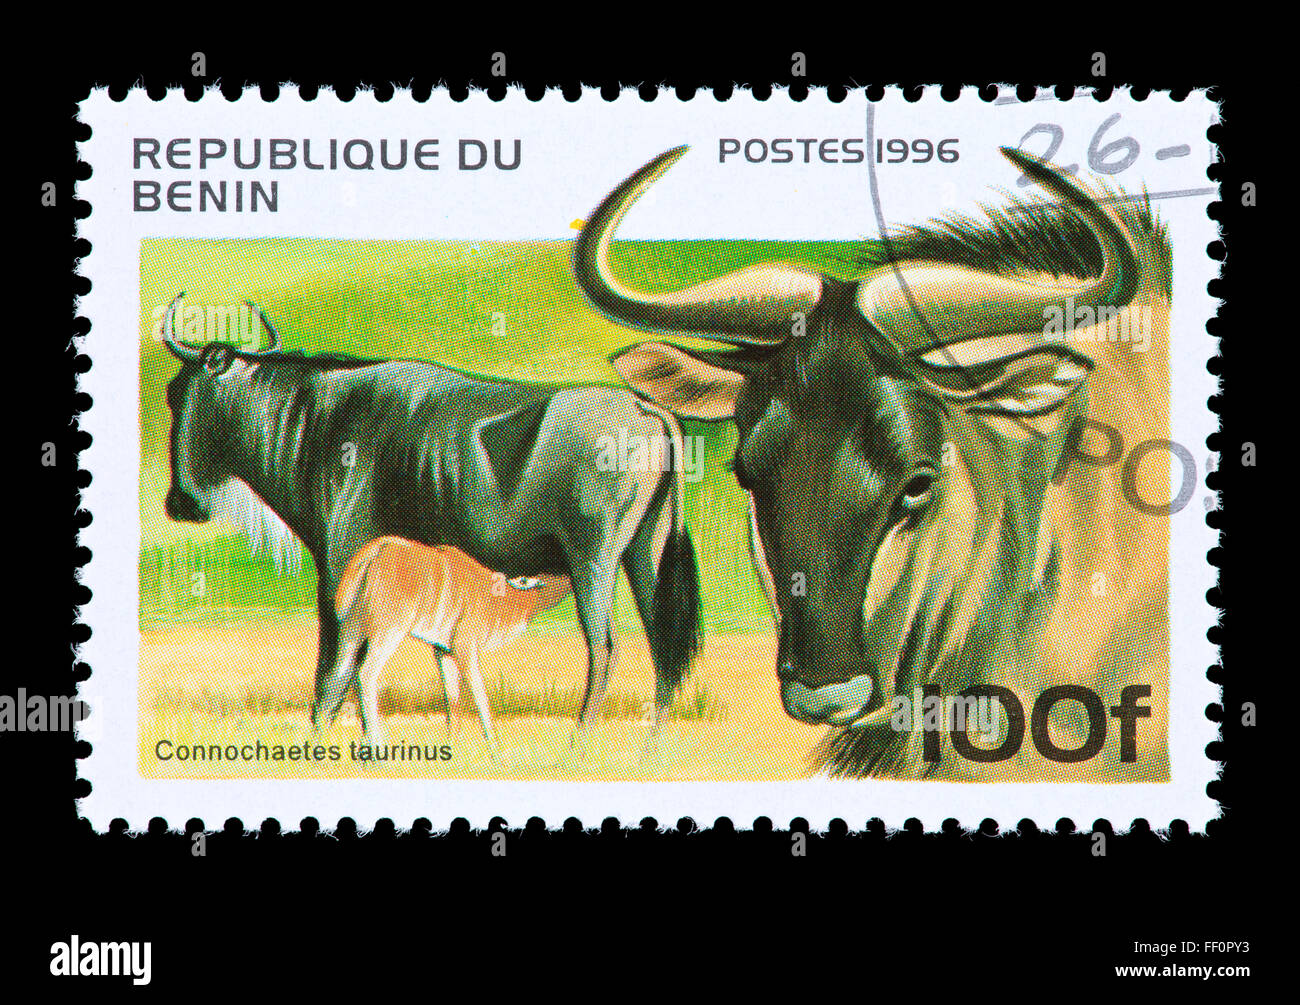 Postage Stamp From Benin Depicting A Blue Wildebeest Connochaetes